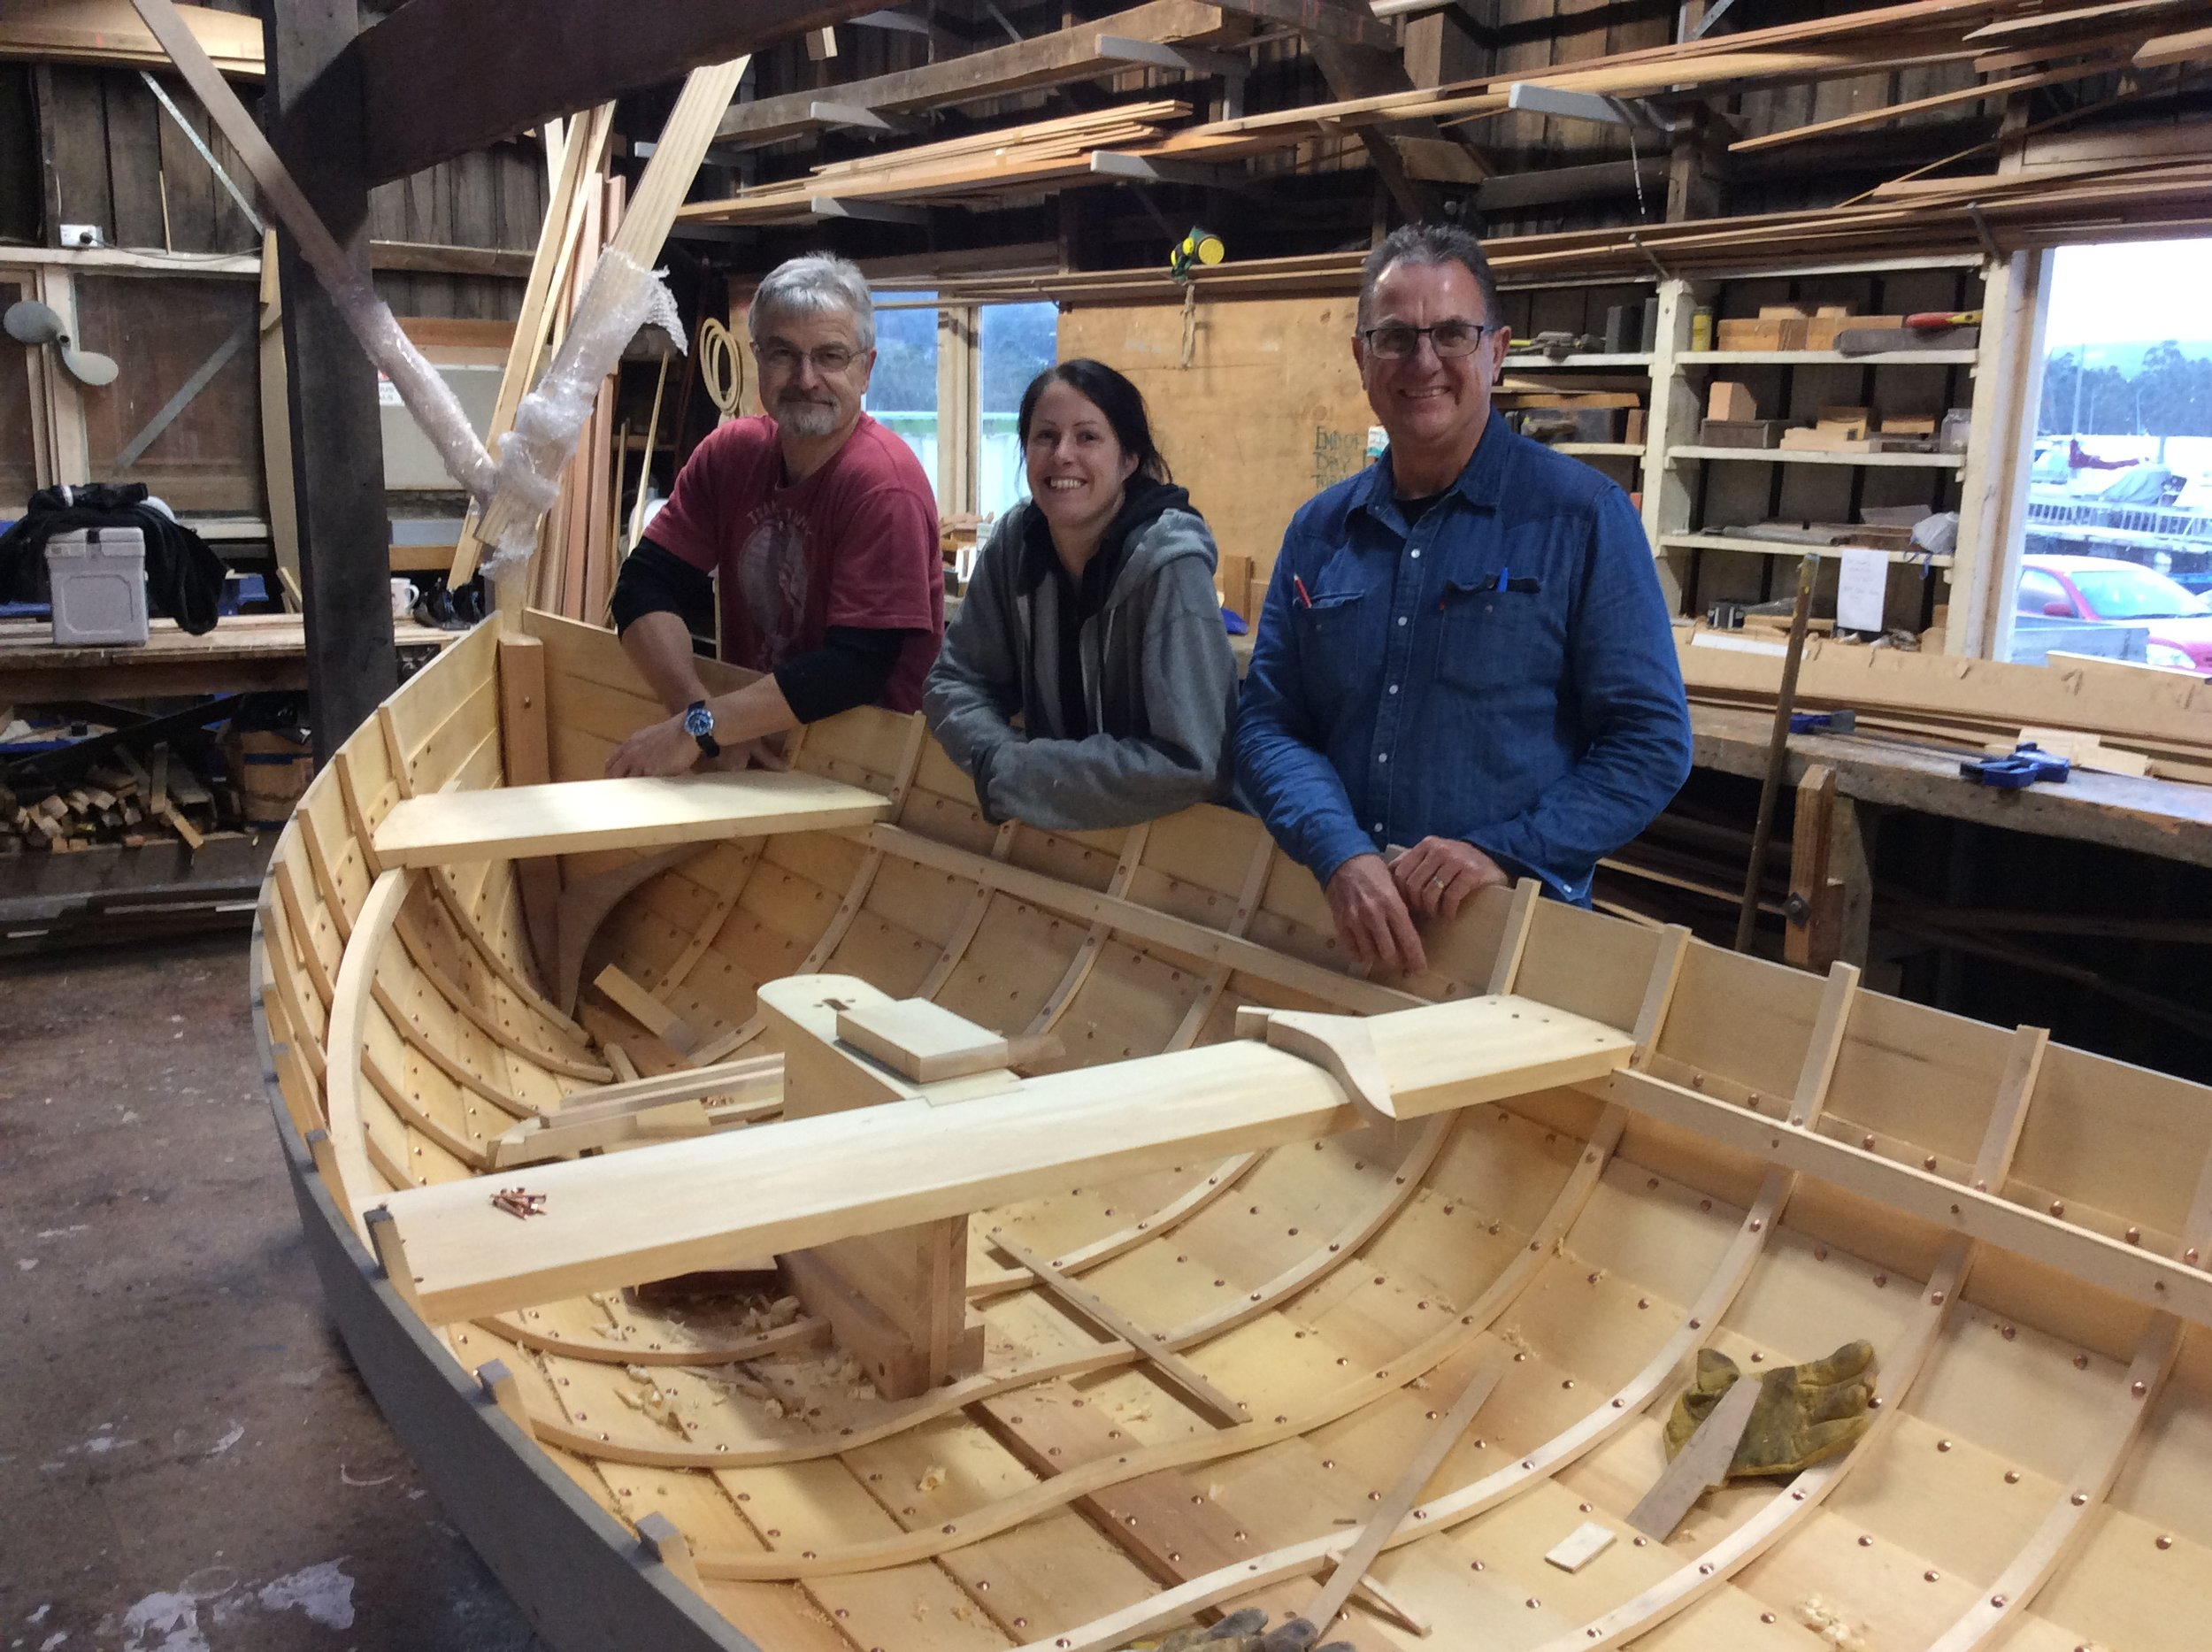 Mike Johnson with students Ellie and Wayne.  Wayne made the sailing version of the 11.4' dinghy to sell at the next Wooden Boat Festival.